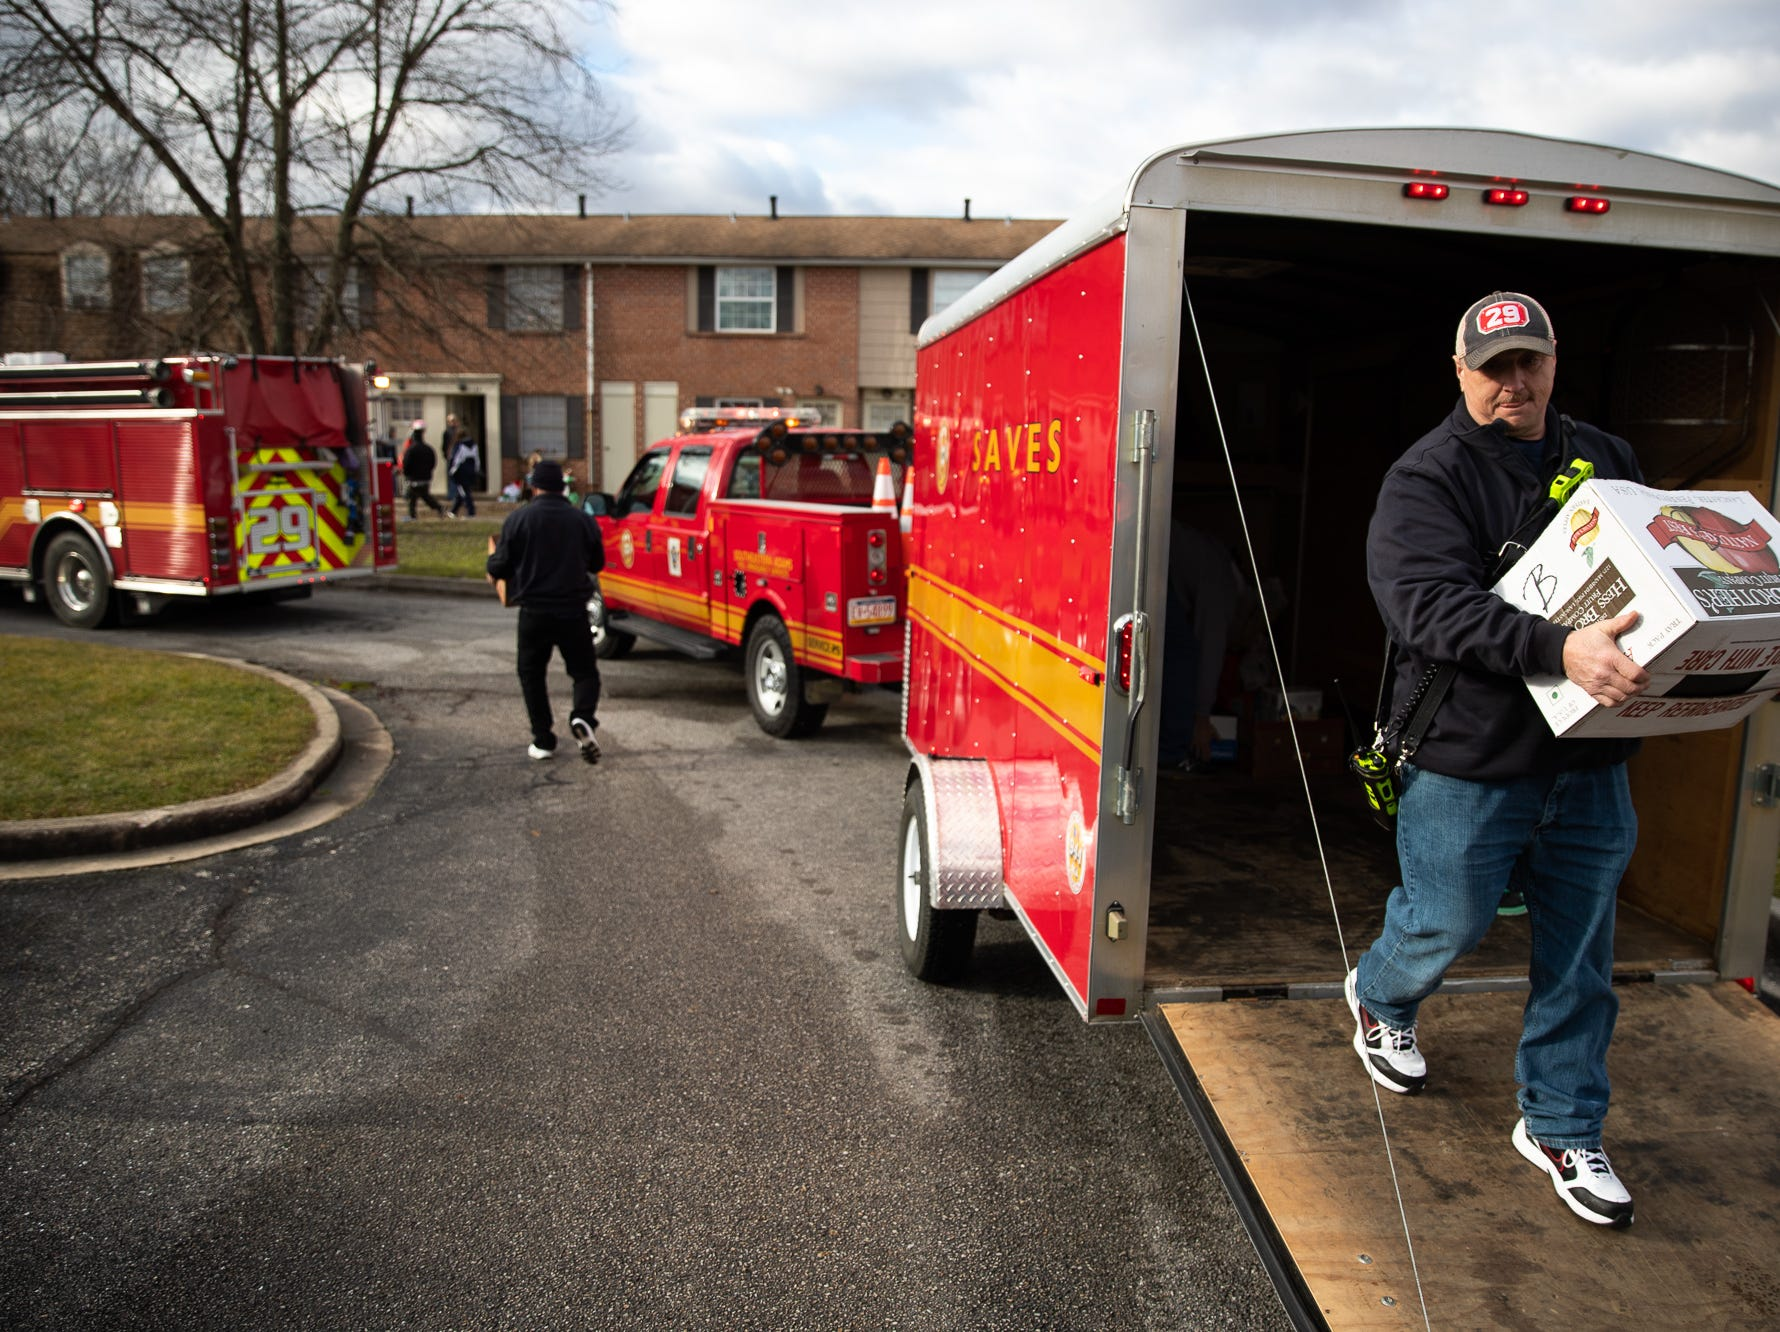 Volunteers carry out presents during the S.A.V.E.S Project Santa, Saturday, Dec. 22, 2018, in McSherrystown Borough. The S.A.V.E.S Project Santa donated food, toys, and clothing to 12 local families in need.